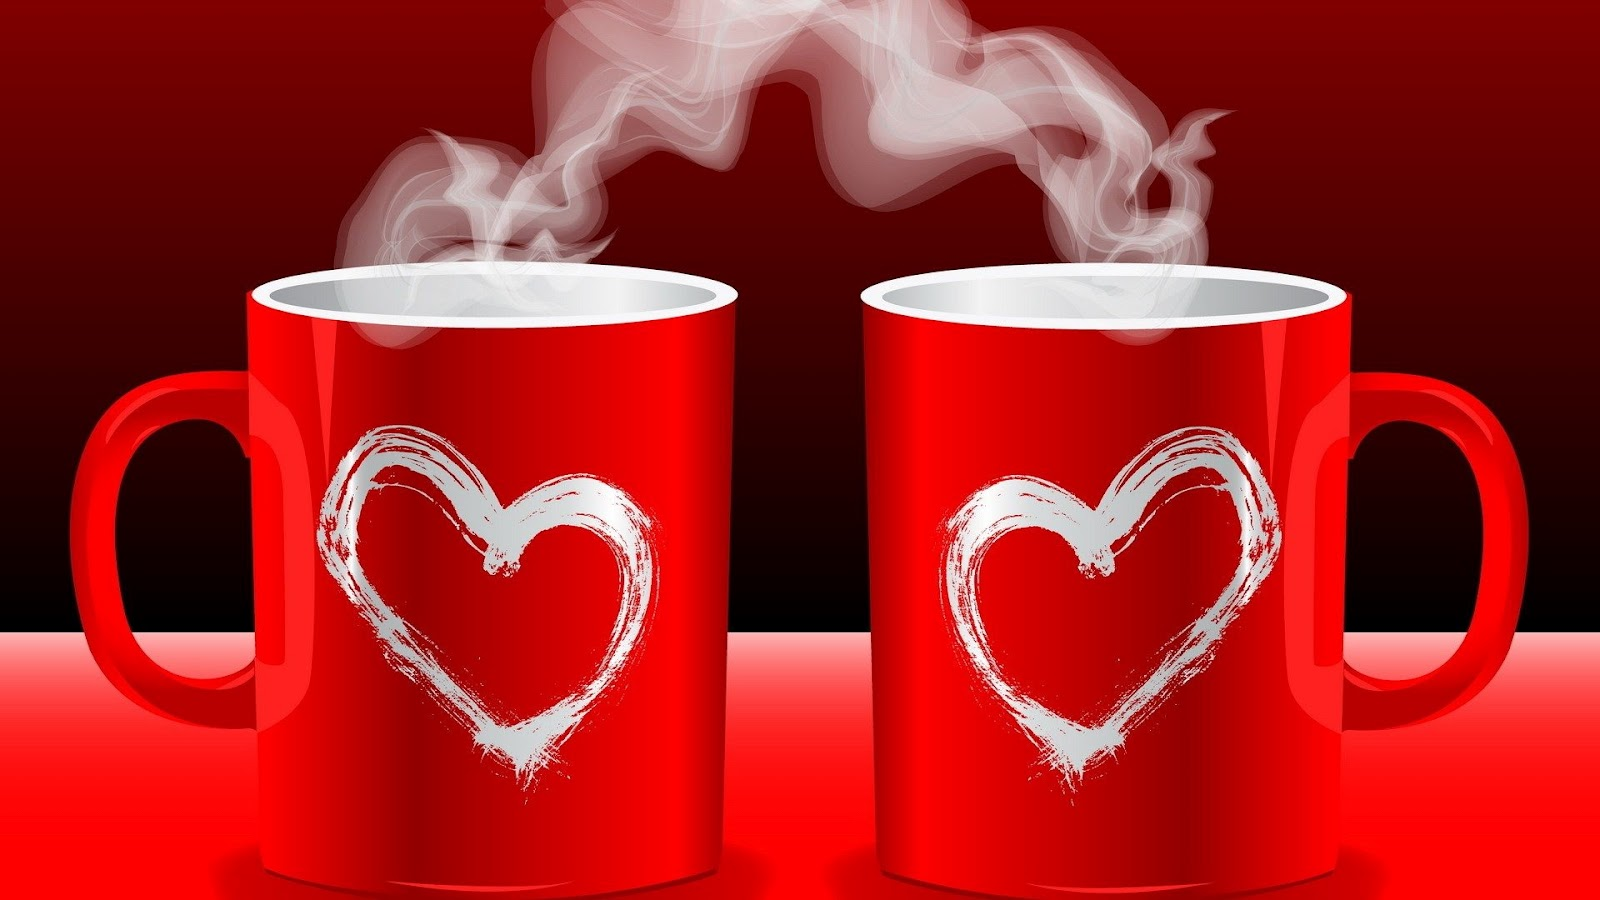 Good Morning Love Images Wallpaper : good morning greeting cards hd wallpapers free download 2013 ~ Full Hd Wall Pictures